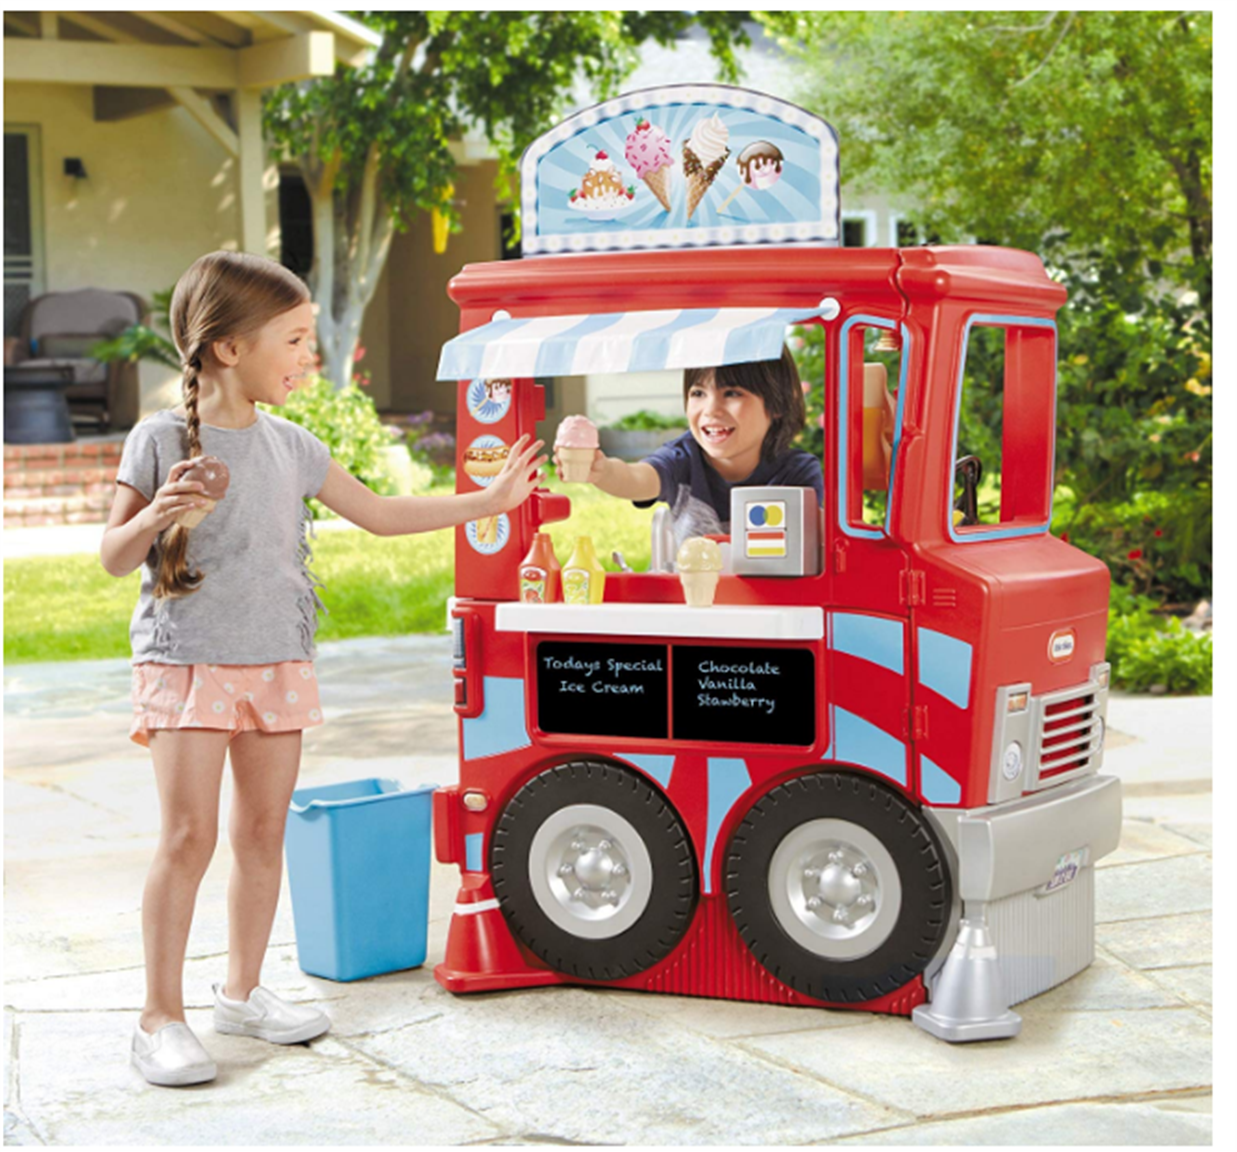 Lowes – Little Tikes 2-in-1 Food Truck Only $29.98, Reg $99.99!